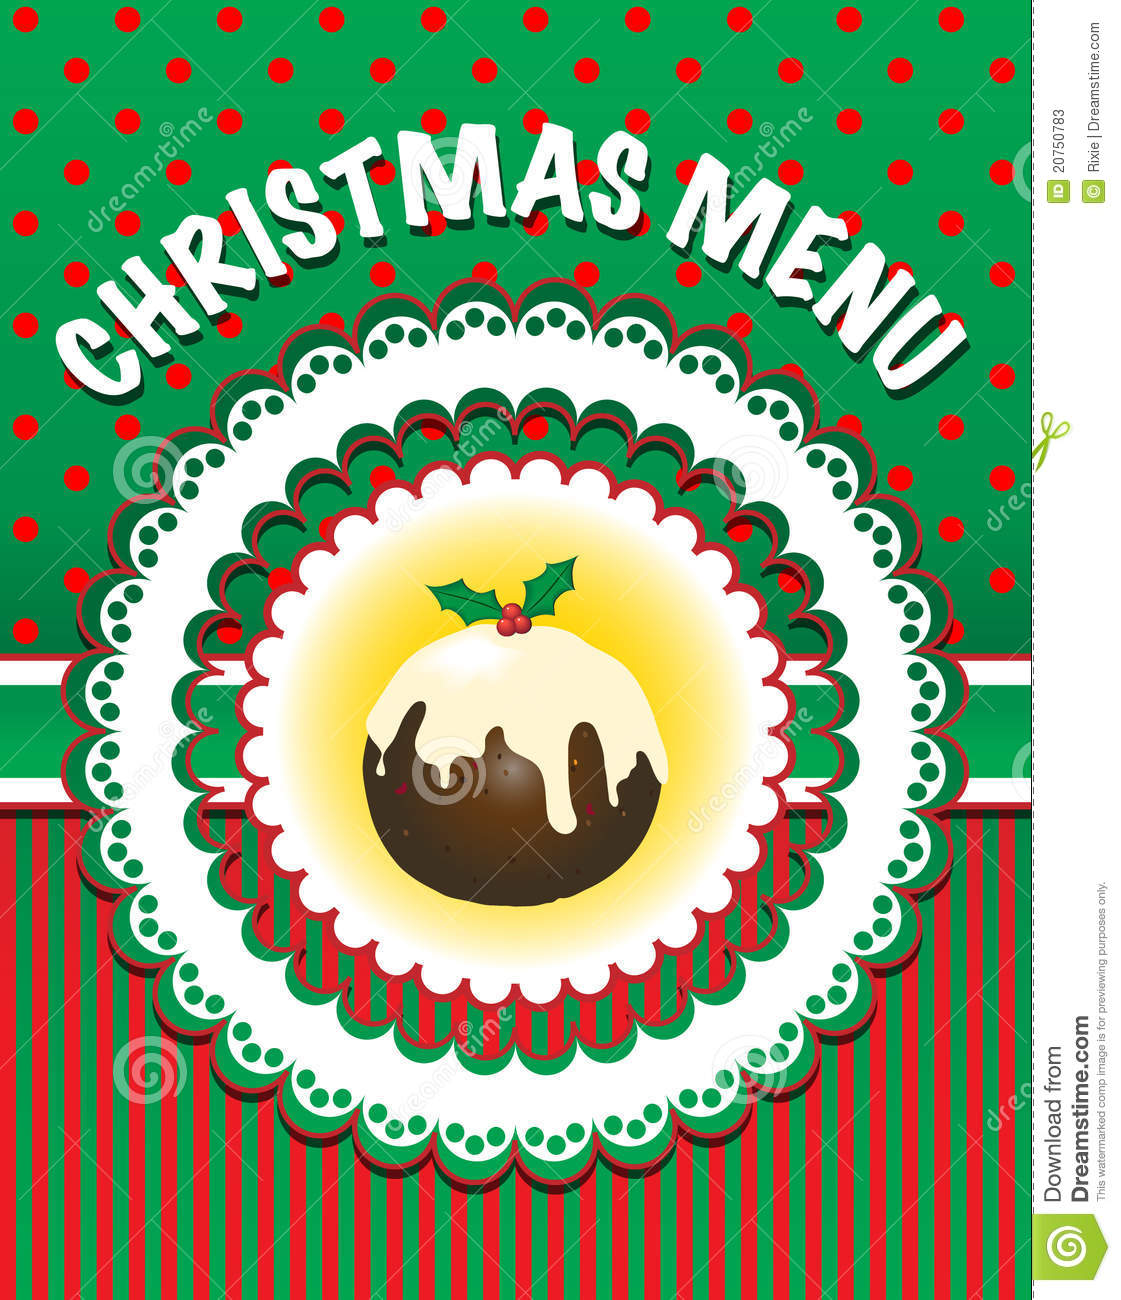 christmas menu template stock photos image  christmas menu template